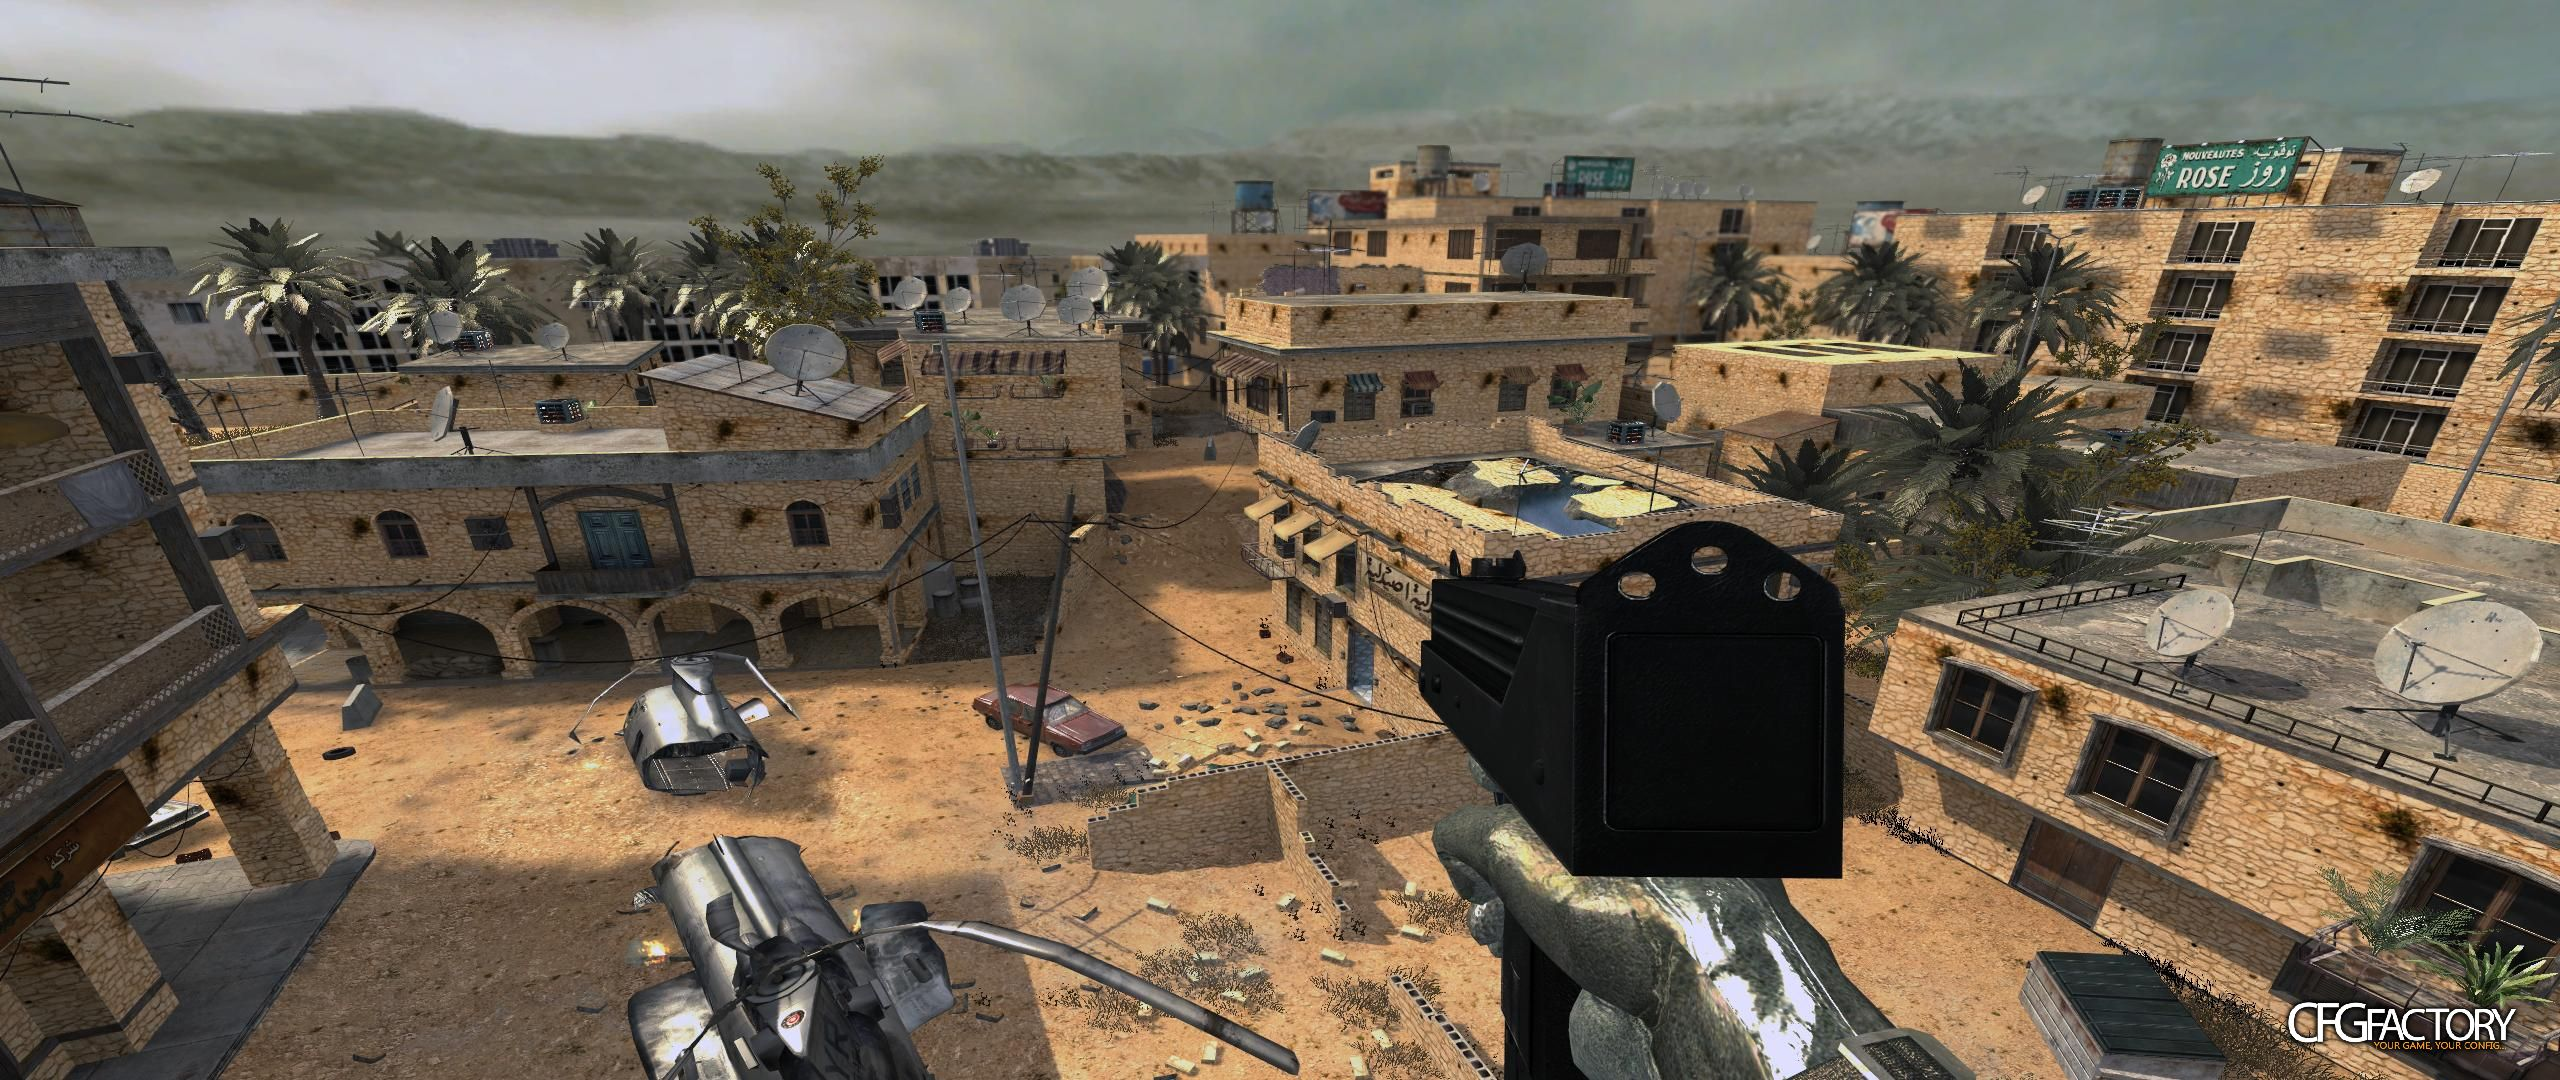 cod4, custom models, mac10, koene007